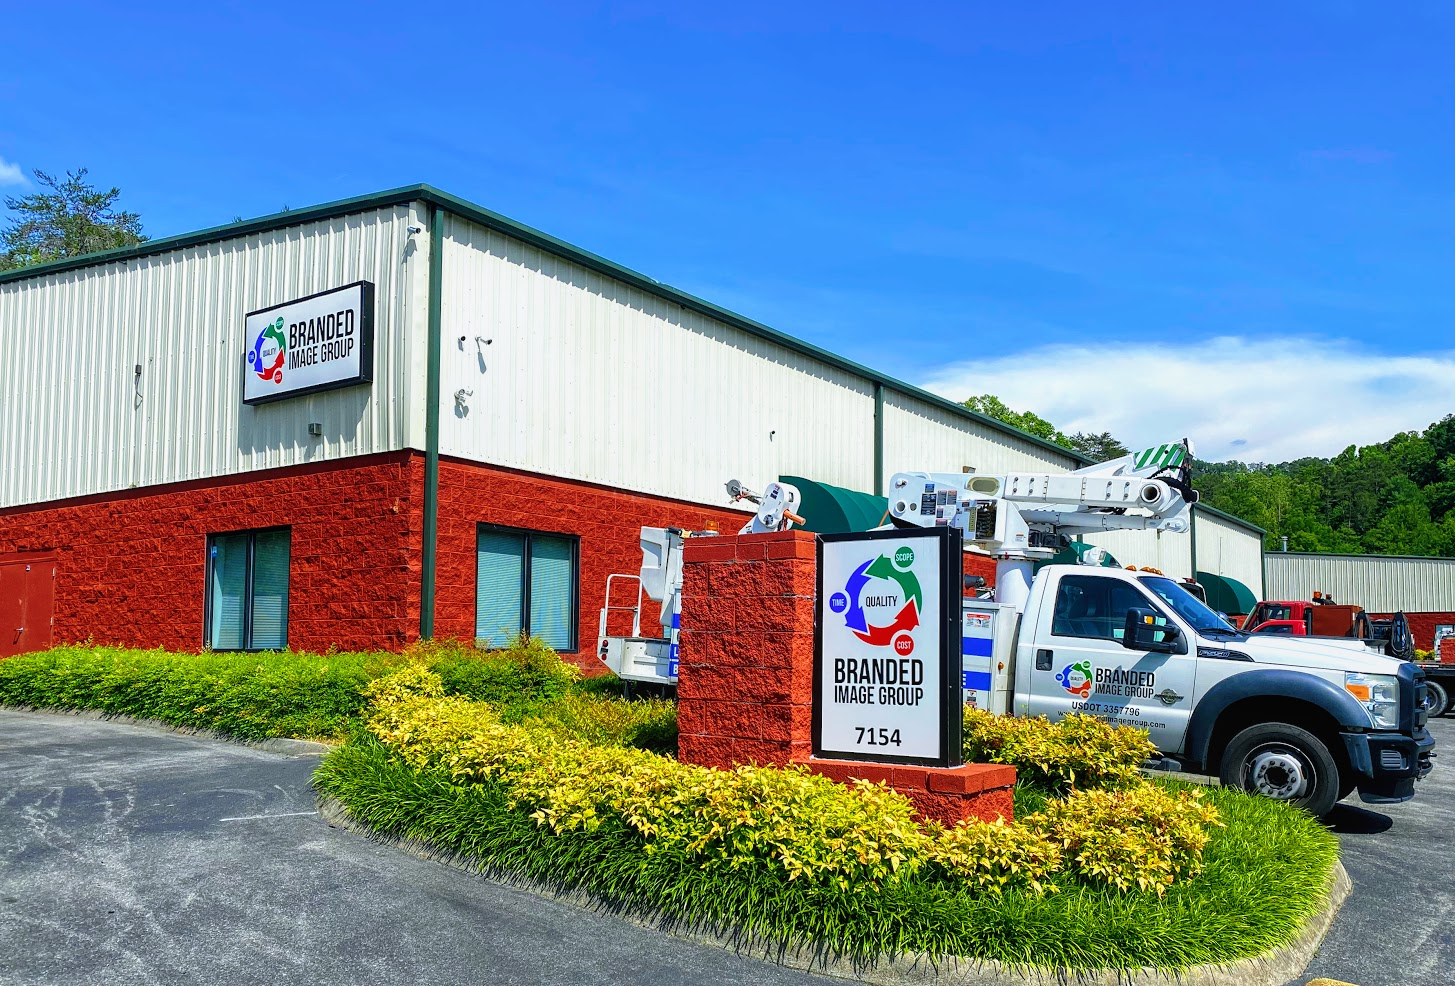 Branded Image Group Knoxville TN Sign Company